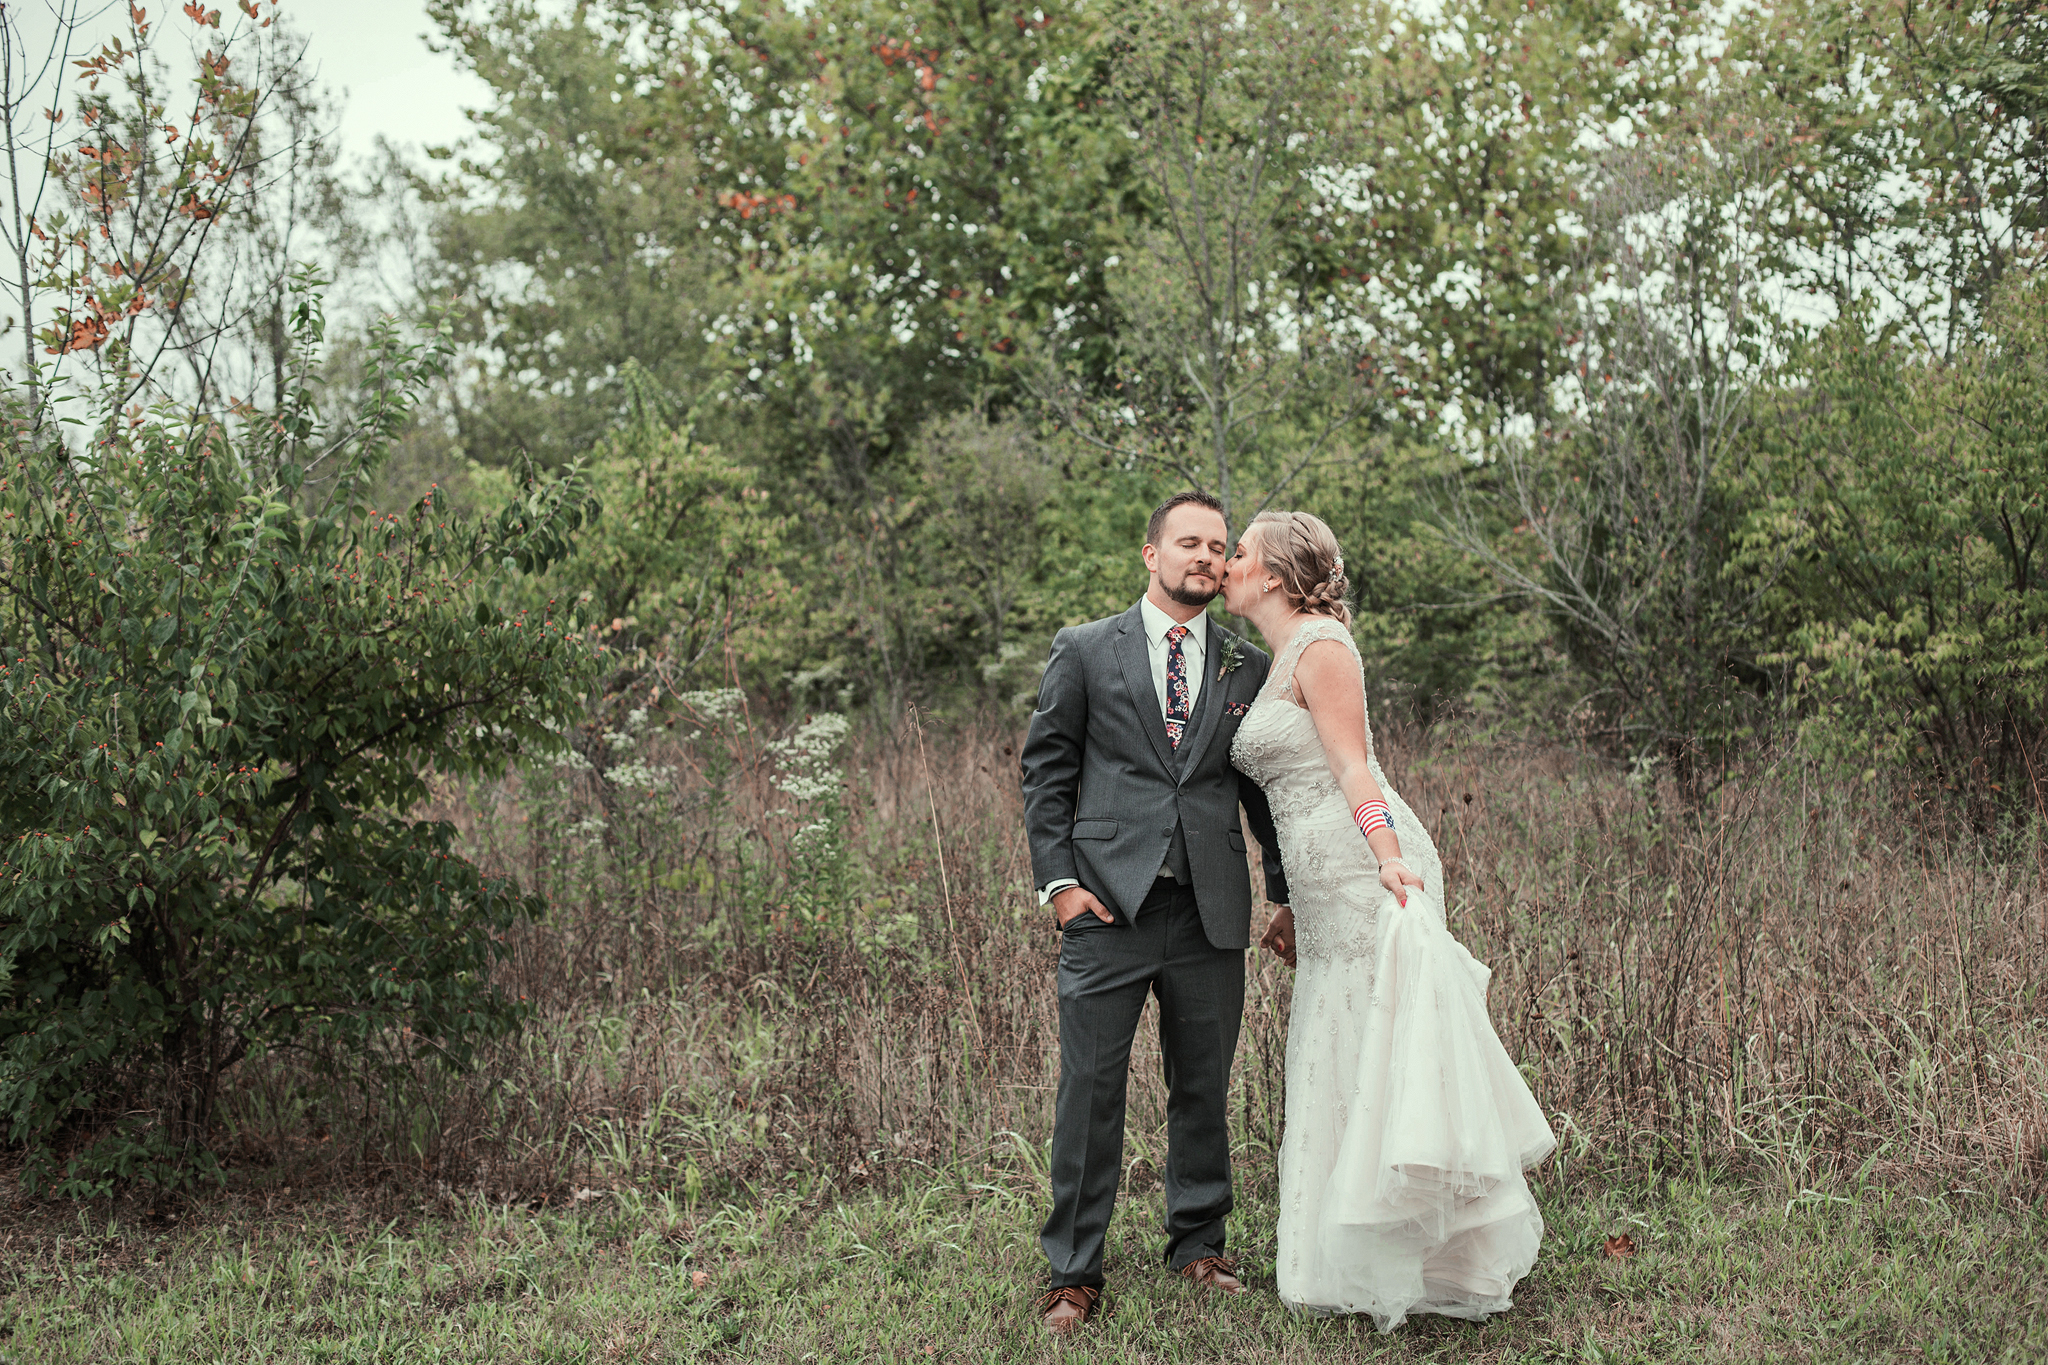 Cincinnati-and-Dayton-OH-Based-Wedding-Photography-Traveling-Wedding-Photographer-Lake-Lyndsay-Hamil